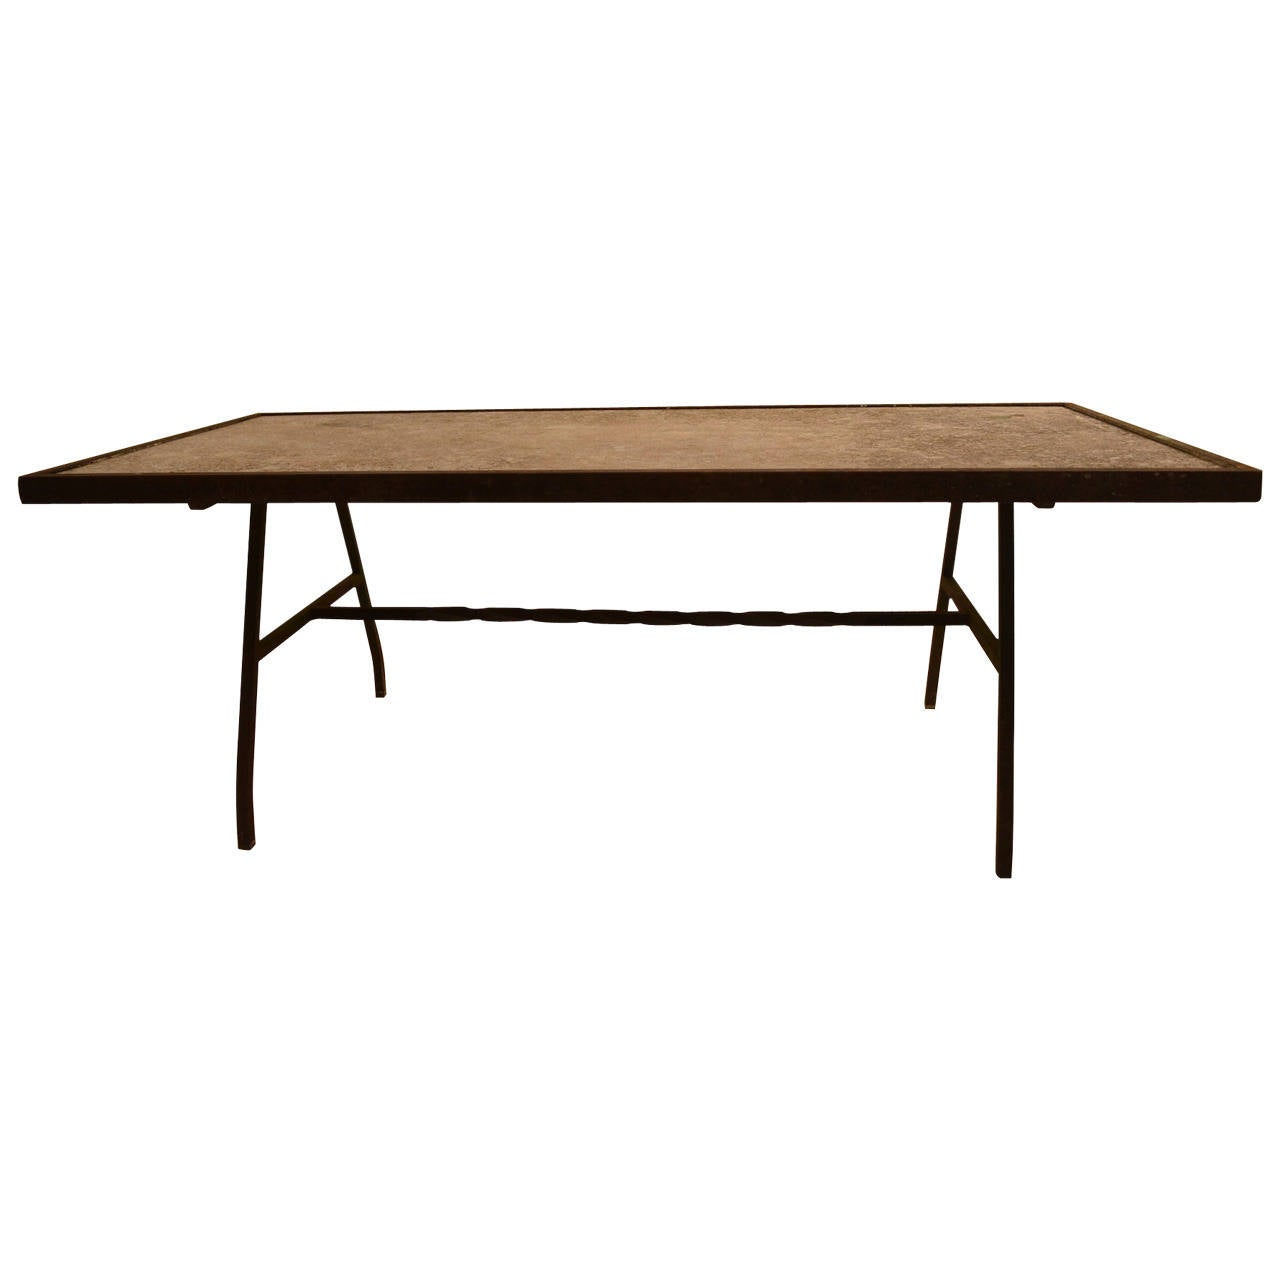 Glass Top Coffee Table With Iron Base: Stone-Top Wrought Iron Base Coffee Table At 1stdibs